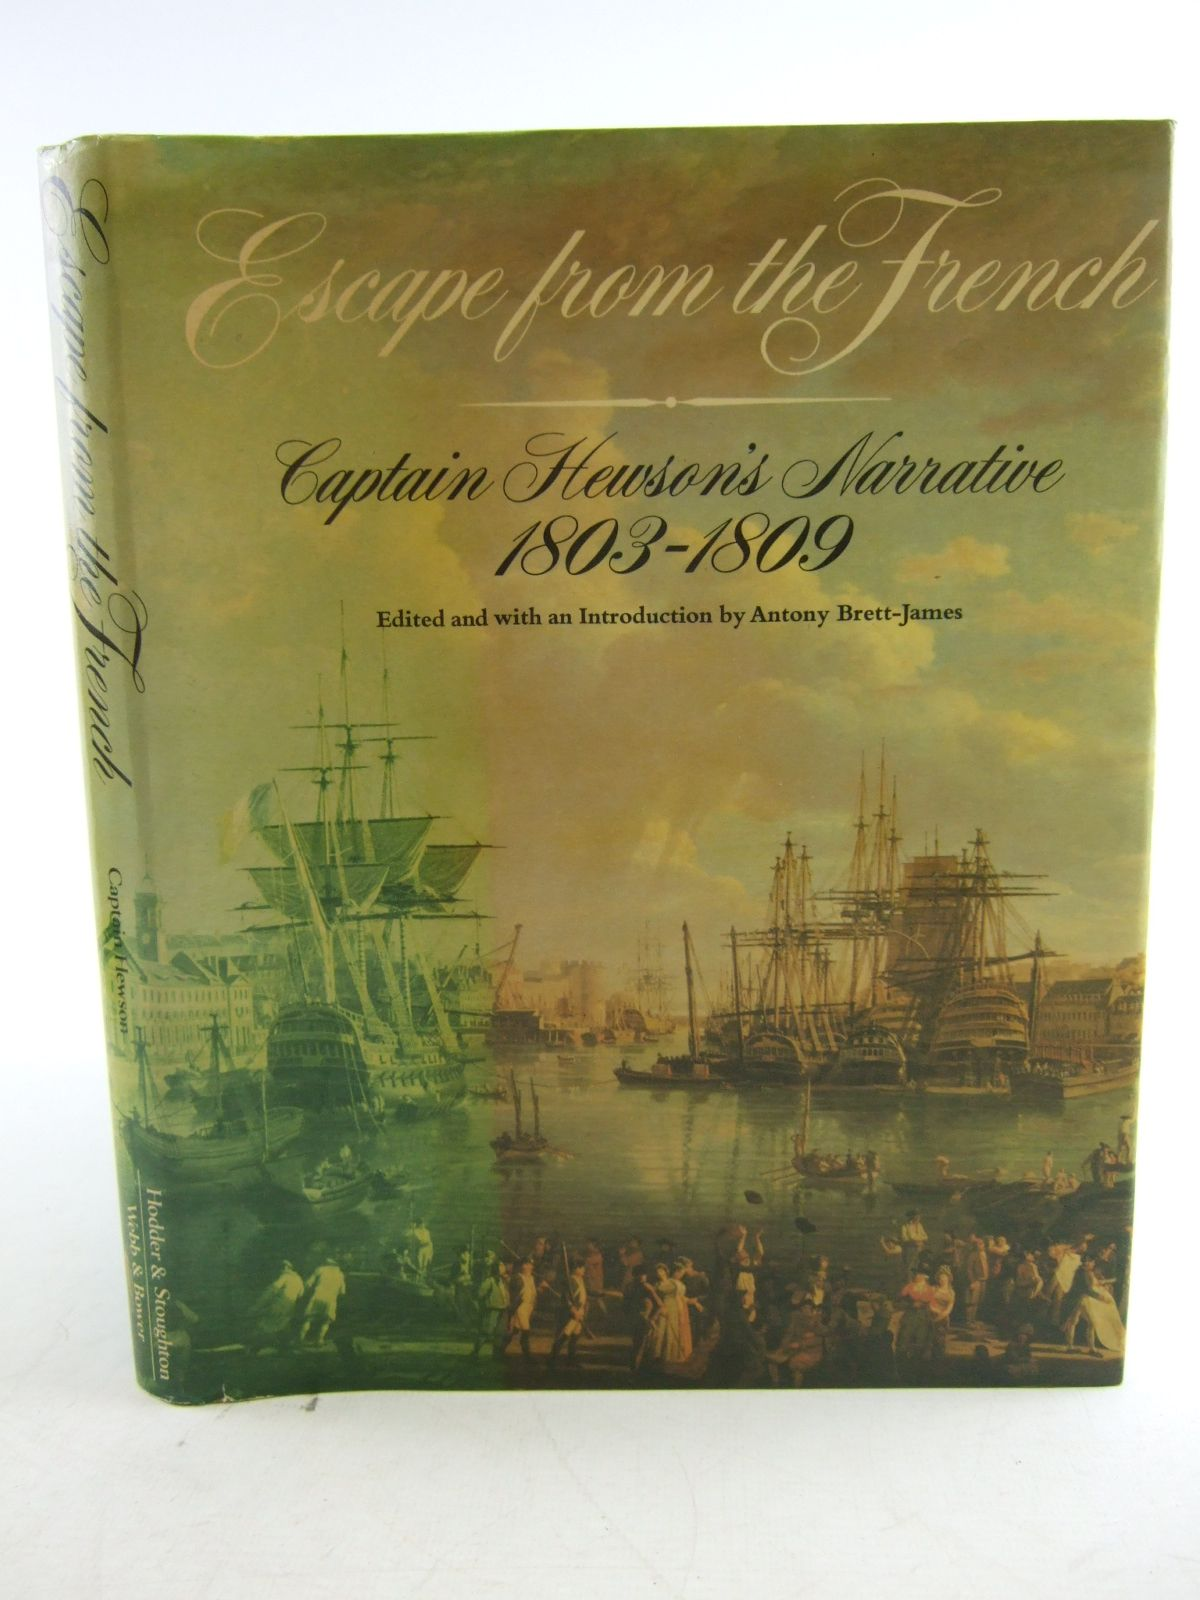 Photo of ESCAPE FROM THE FRENCH CAPTAIN HEWSON'S NARRATIVE (1803-1809) written by Hewson, Maurice<br />Brett-James, Antony published by Hodder & Stoughton (STOCK CODE: 1806968)  for sale by Stella & Rose's Books